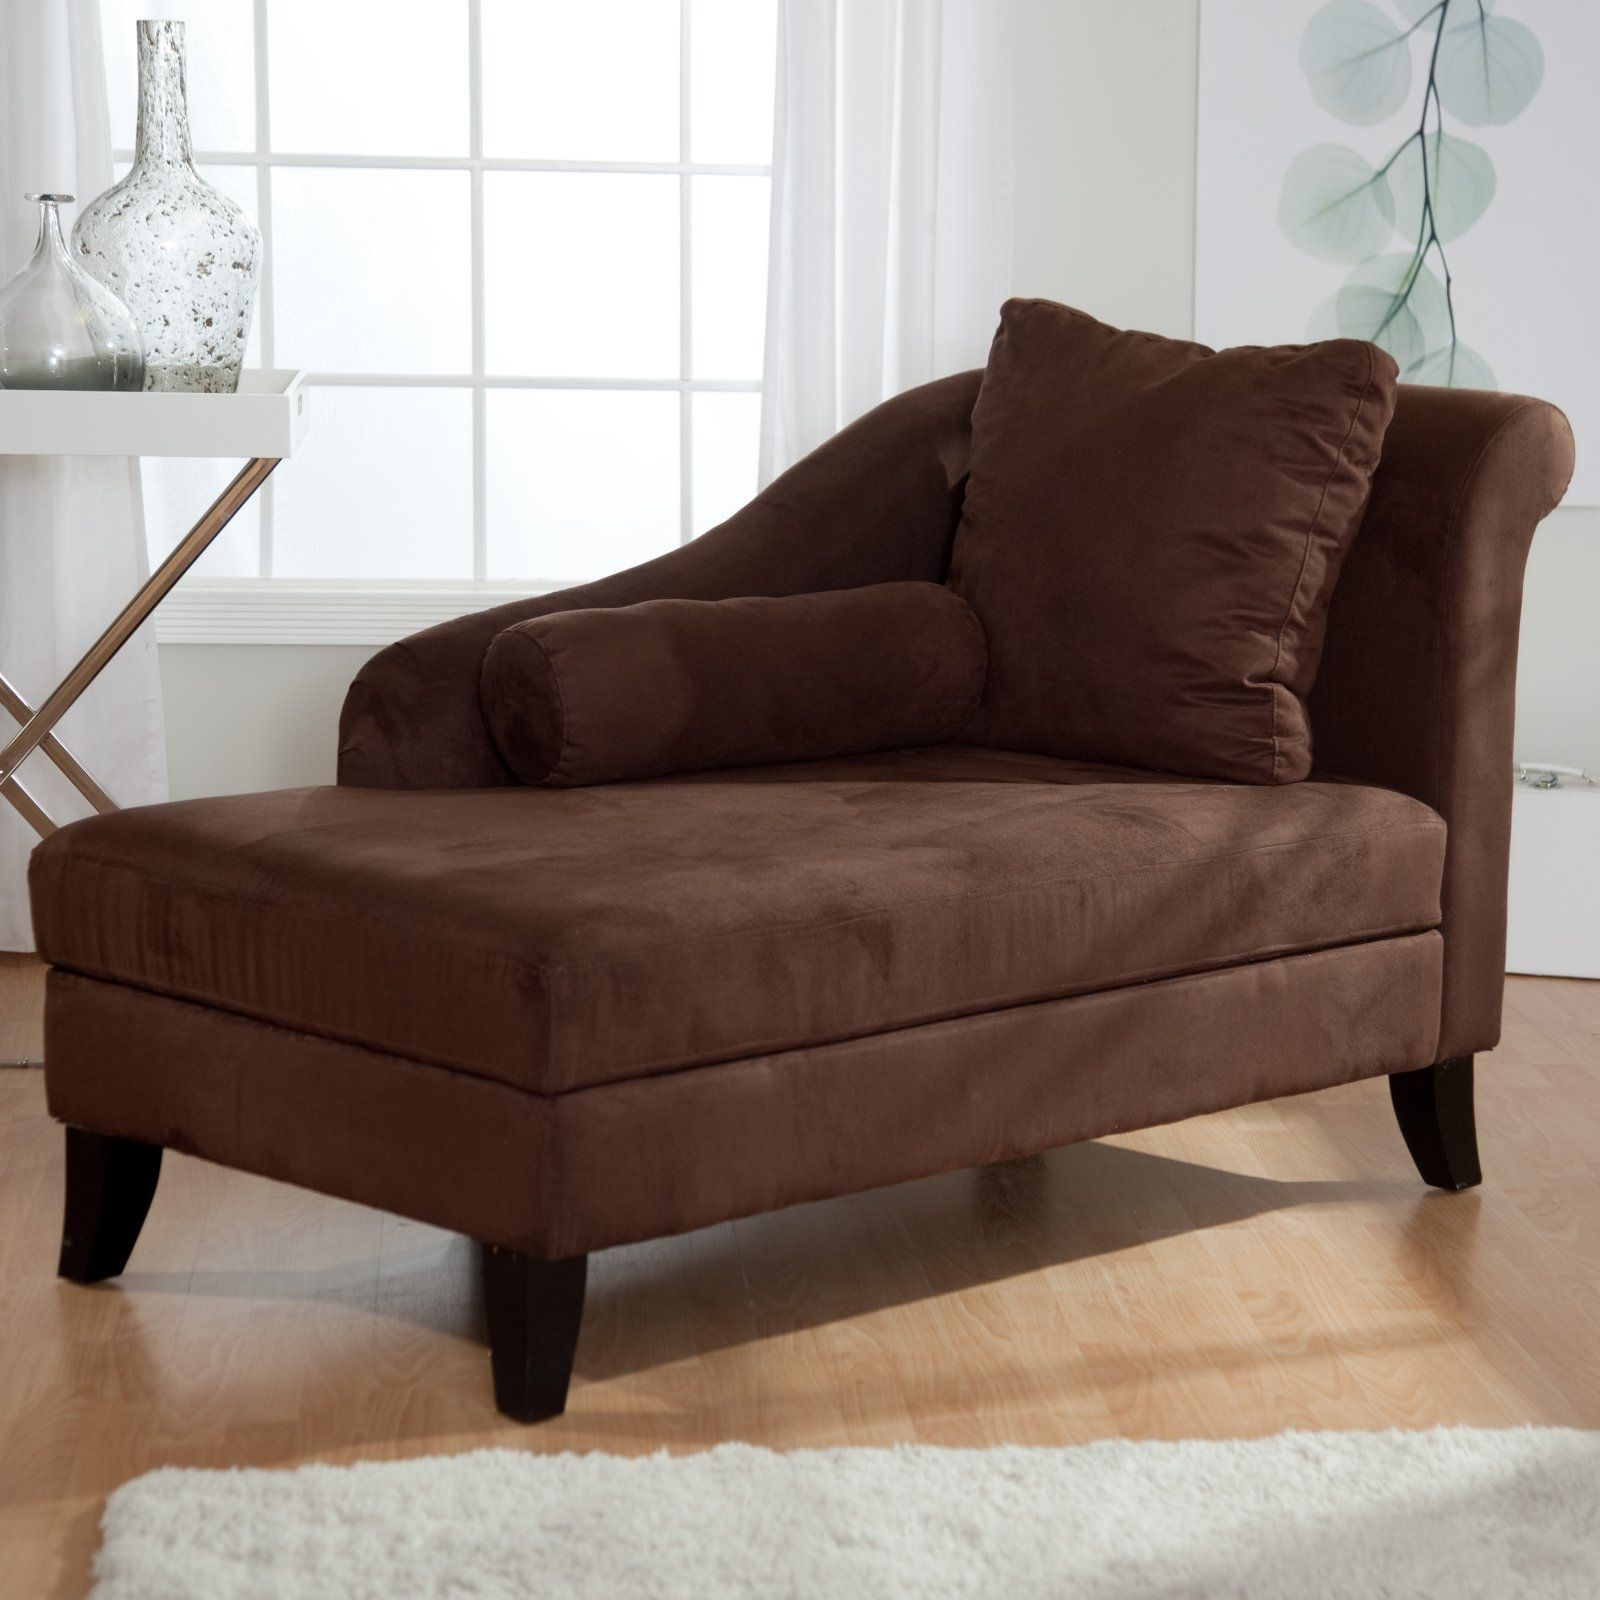 Lounge Chairs For Bedroom Ashland Chaise Storage Lounger Mocha Living Room